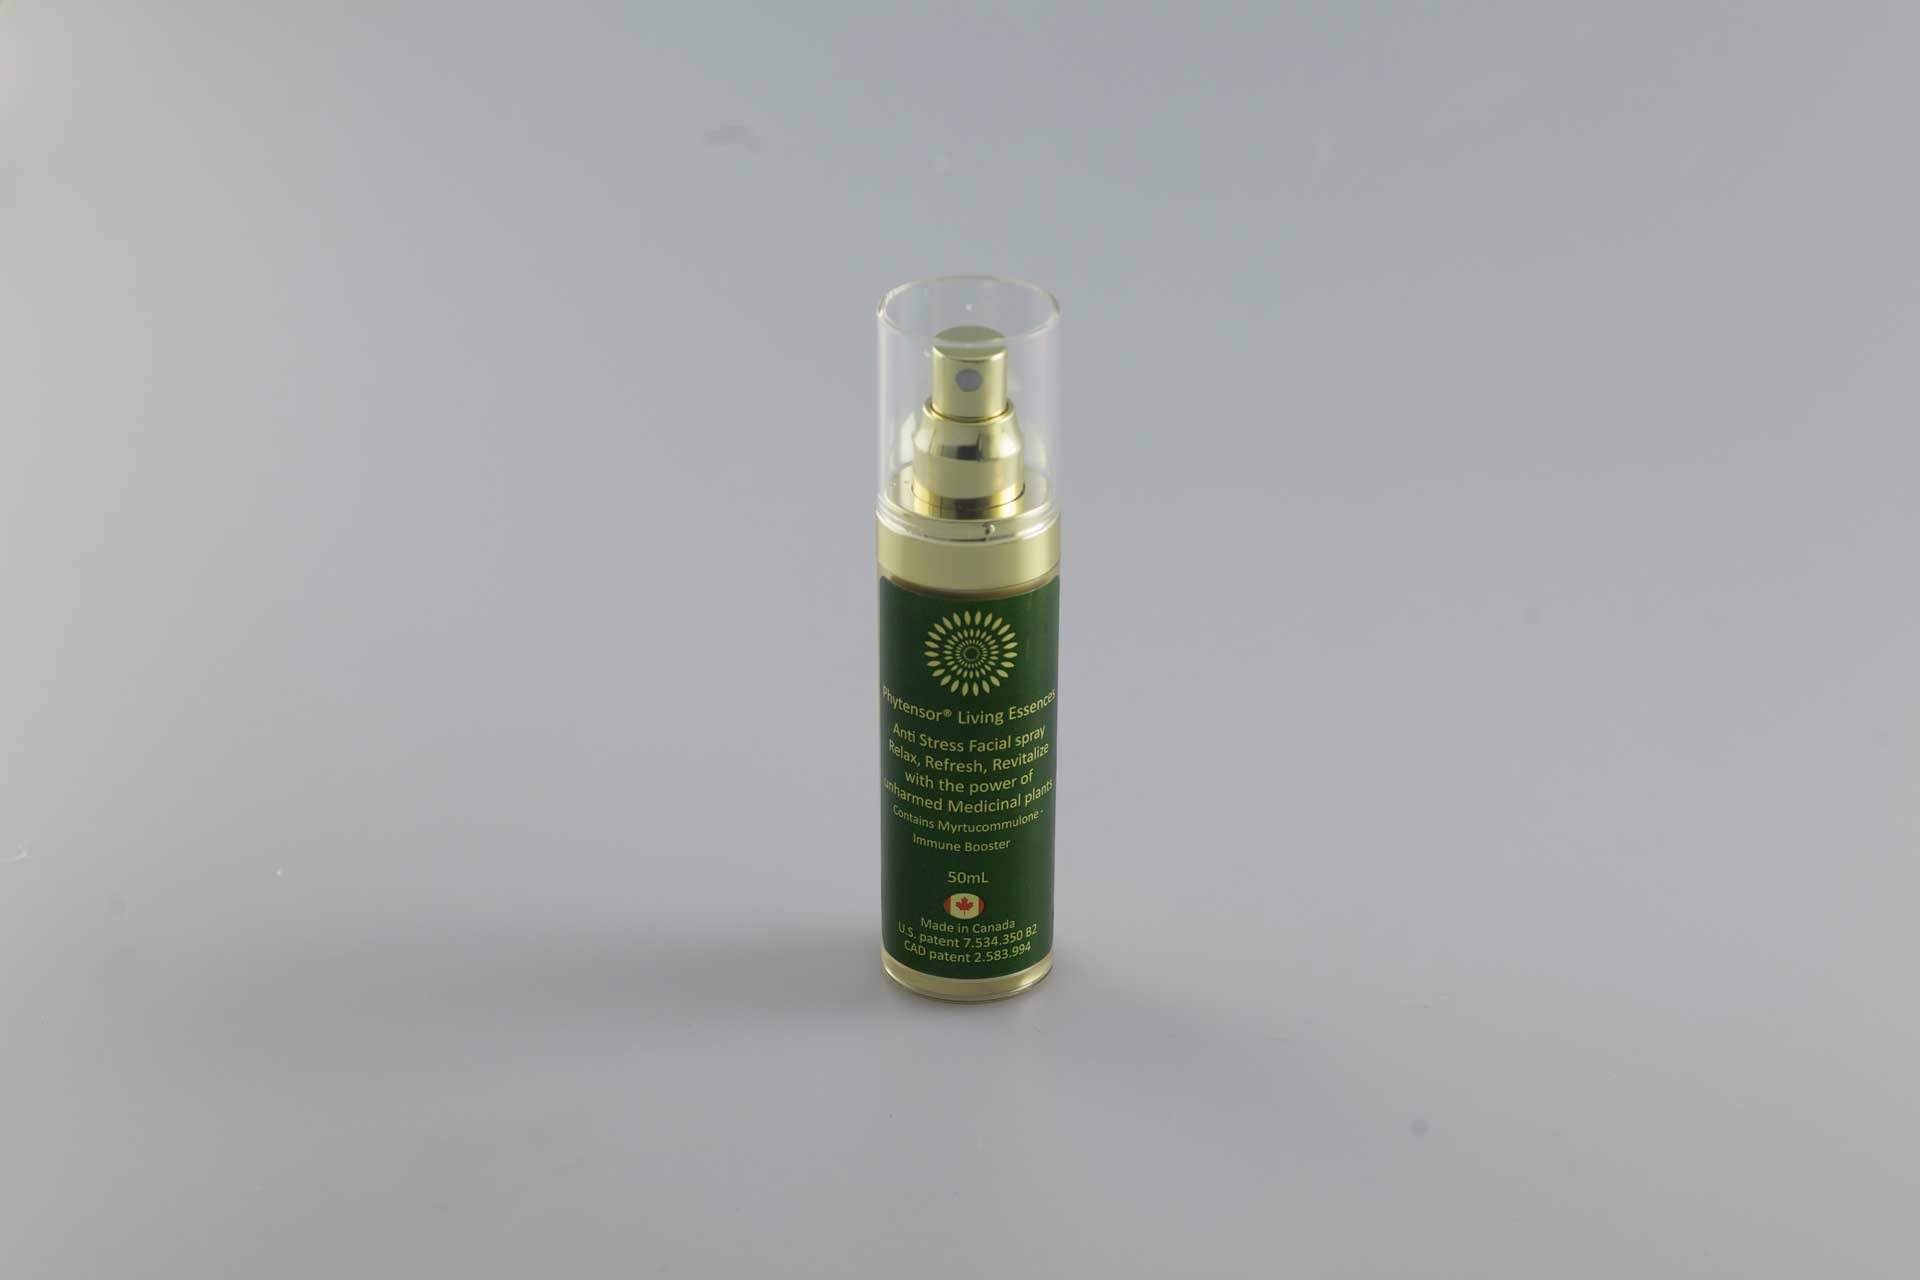 spray single living essences anti stress